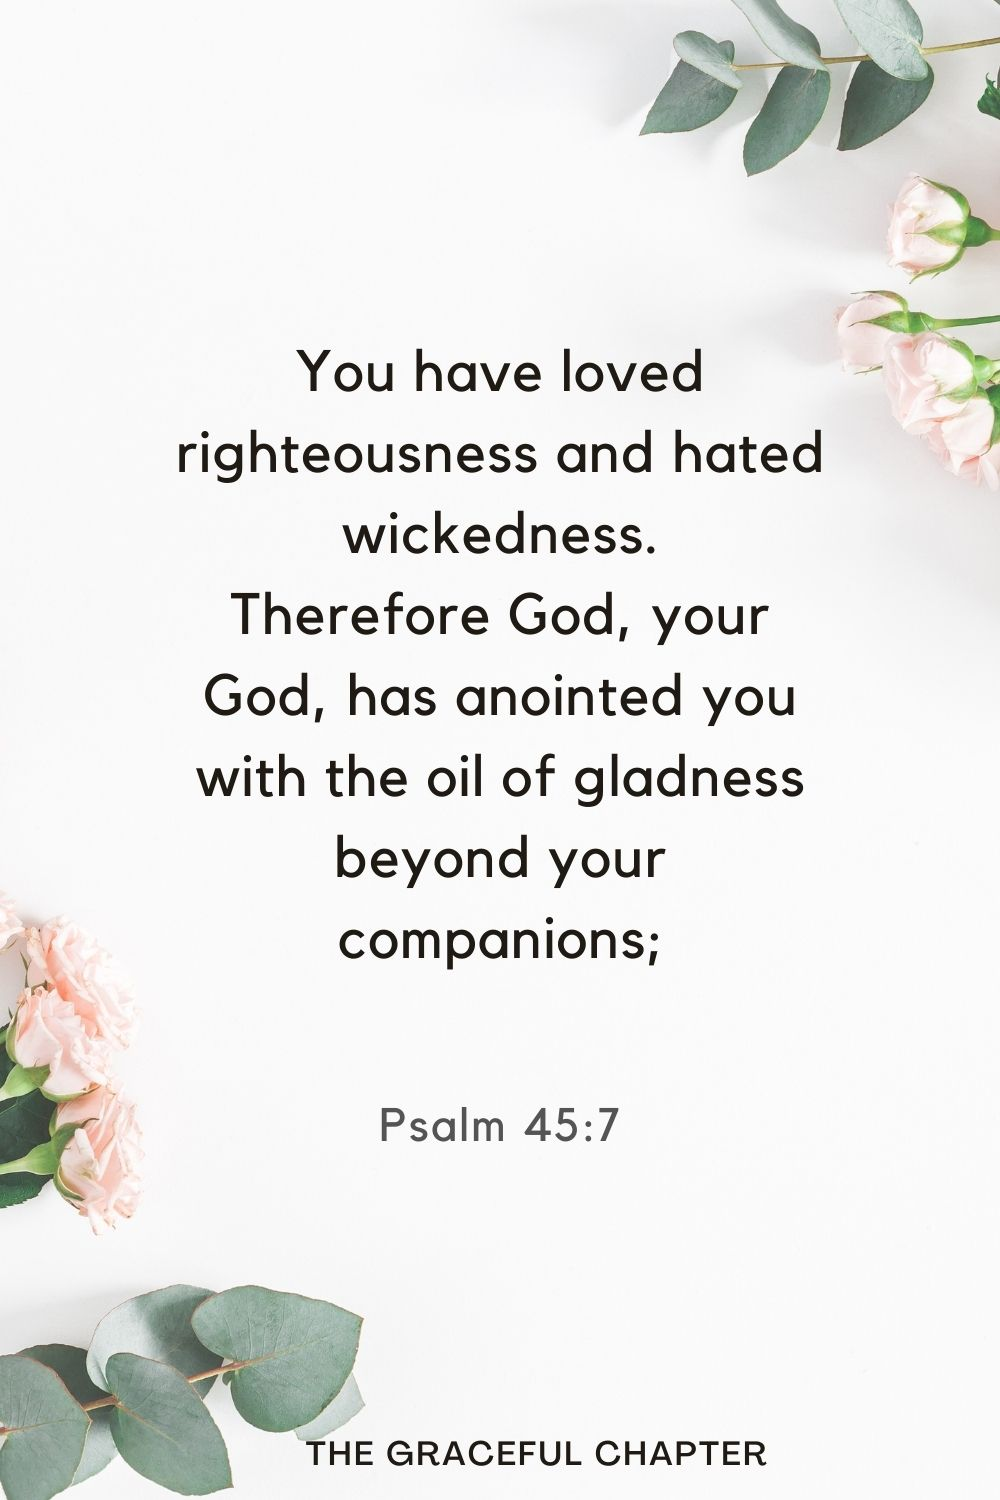 You have loved righteousness and hated wickedness. Therefore God, your God, has anointed you with the oil of gladness beyond your companions; Psalm 45:7